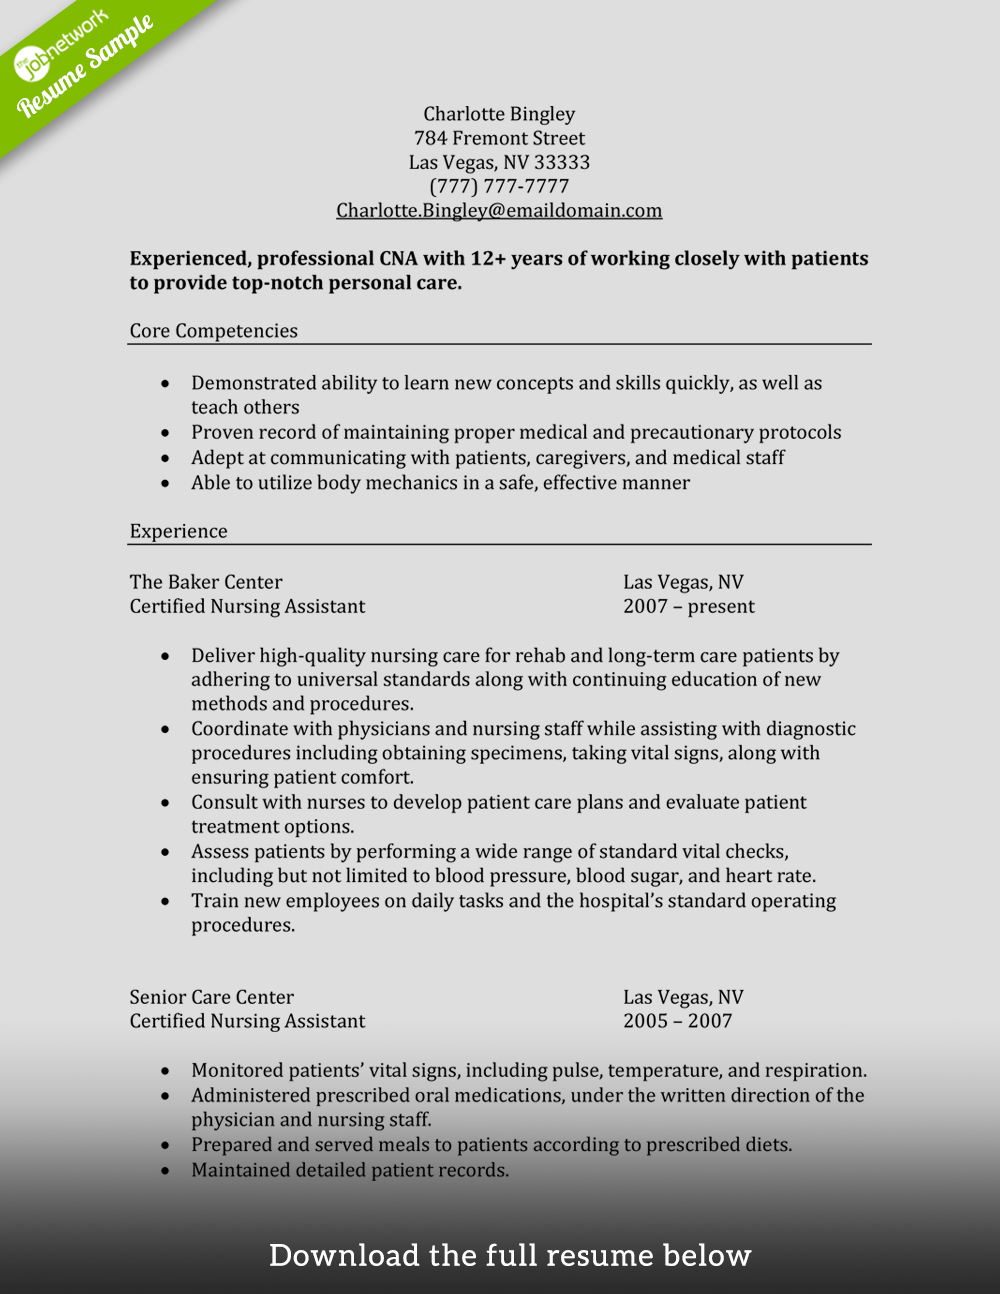 Exceptional Cna Resume Experienced  Certified Nurse Assistant Resume